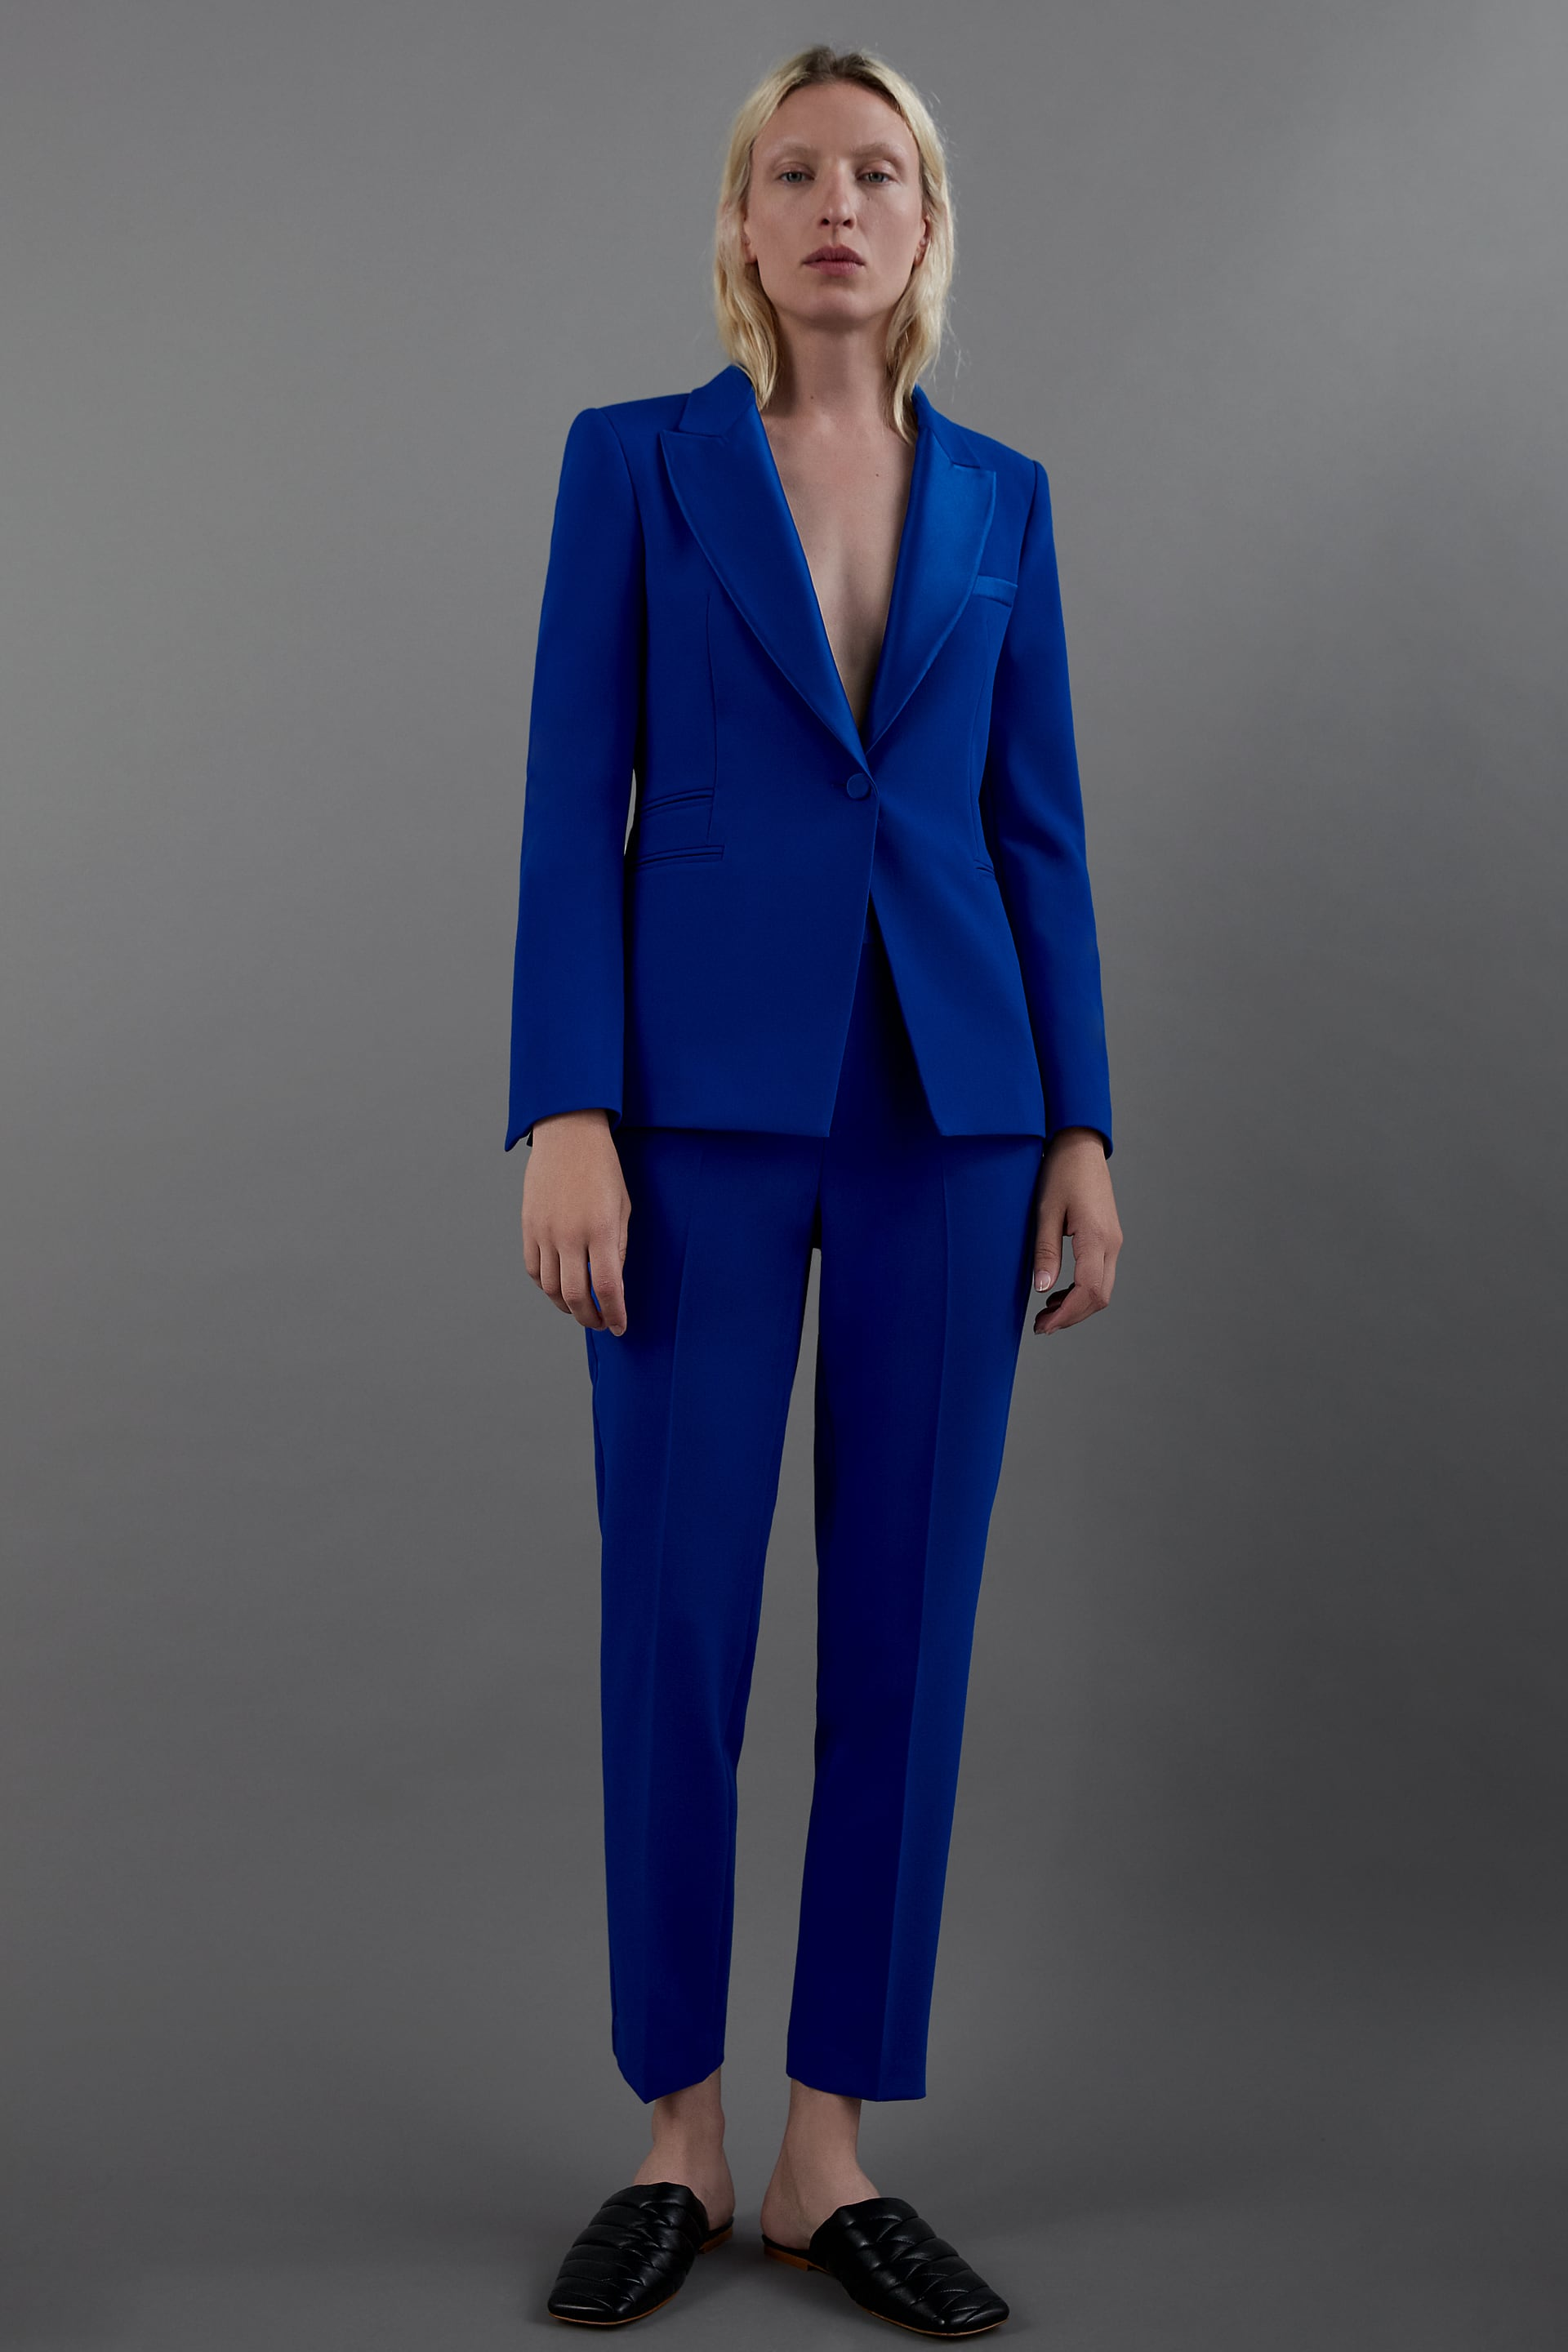 Zara Blue Suit.jpg